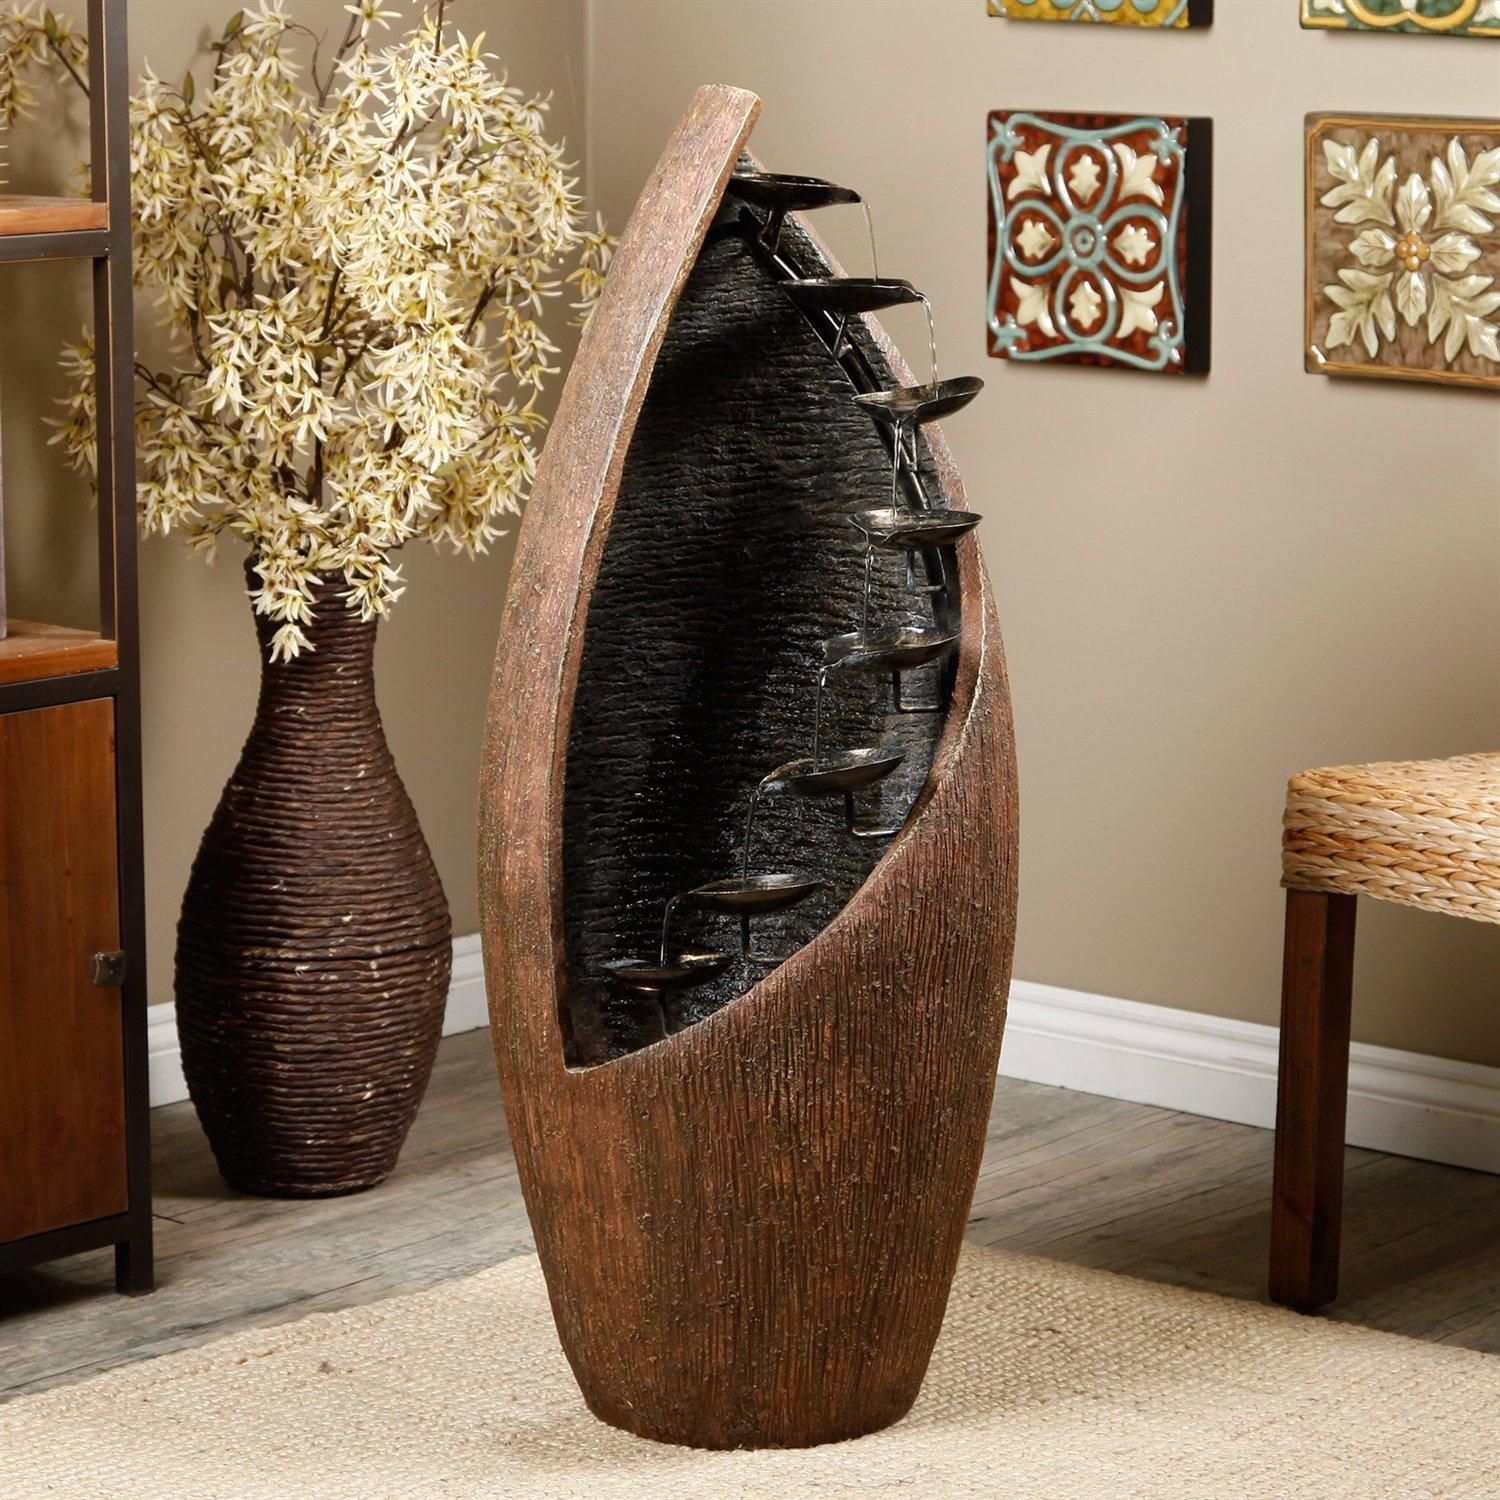 Indoor / Outdoor Cascading Trickling Fountain with Light - Water Recirculates